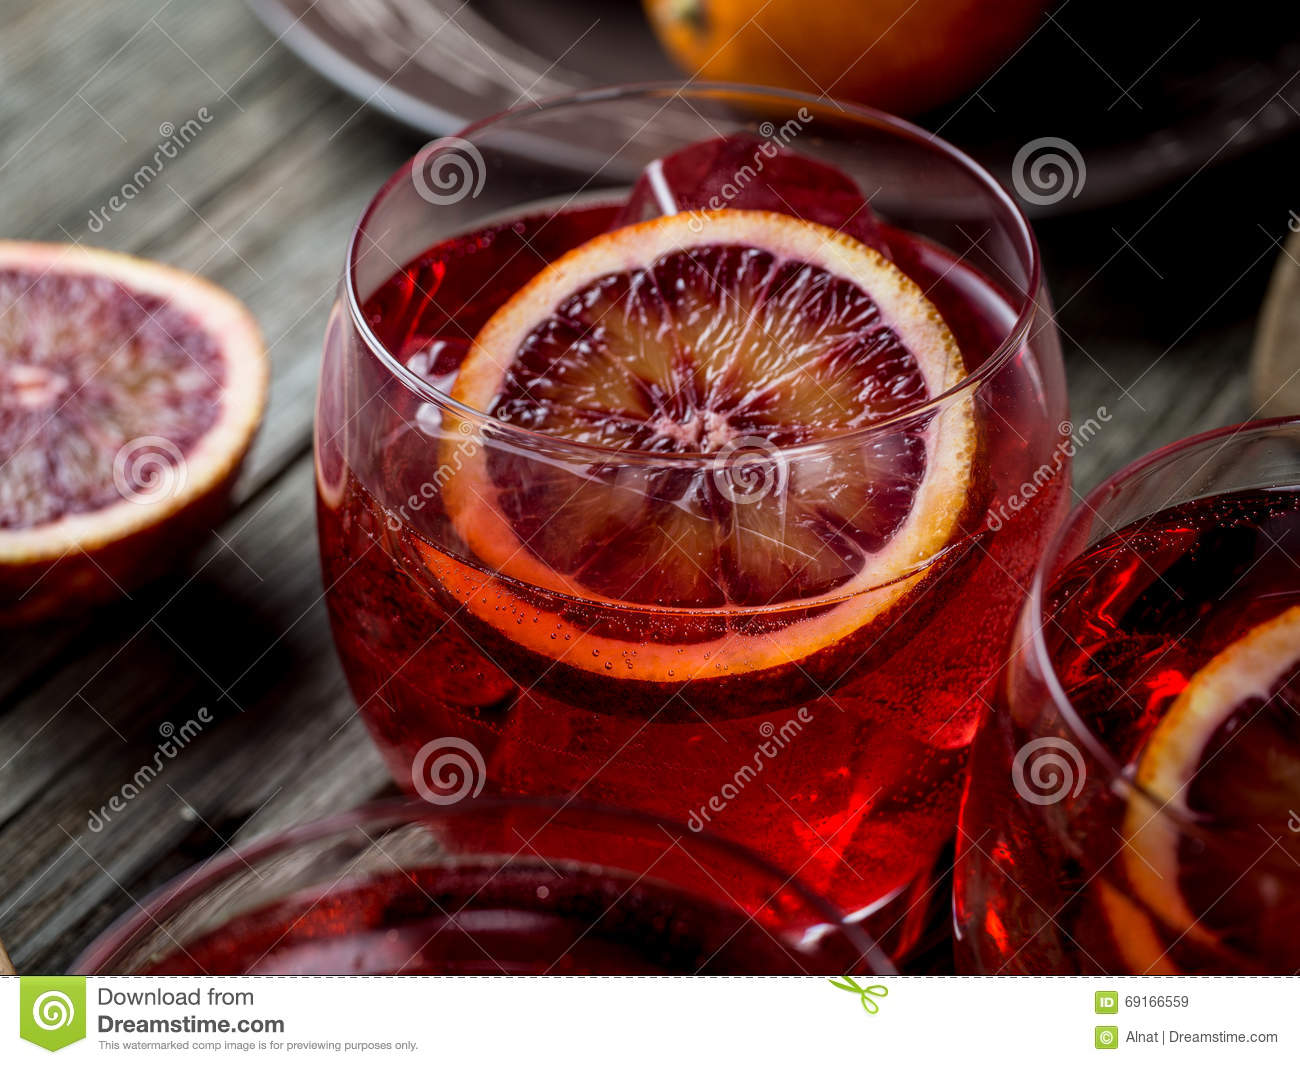 Blood Orange And Pomegranate Cocktails Stock Photo - Image: 69166559